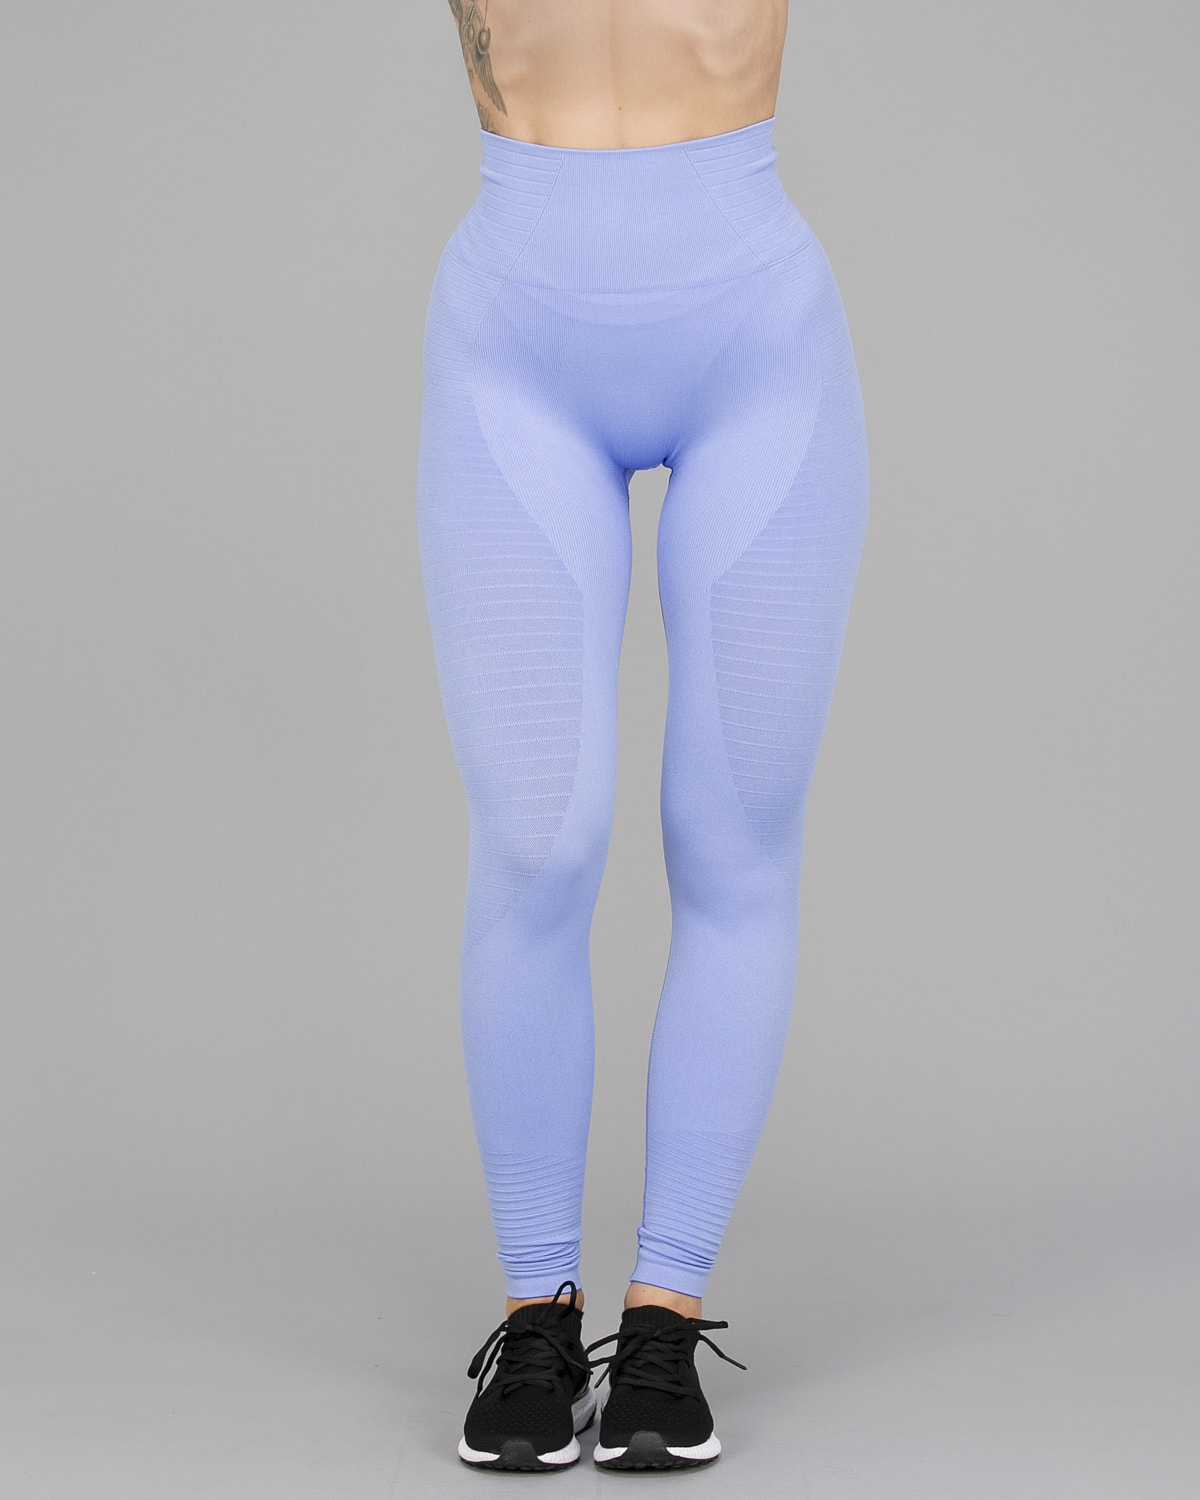 Jerf Gela 2.0 Tights Blue Pastel11